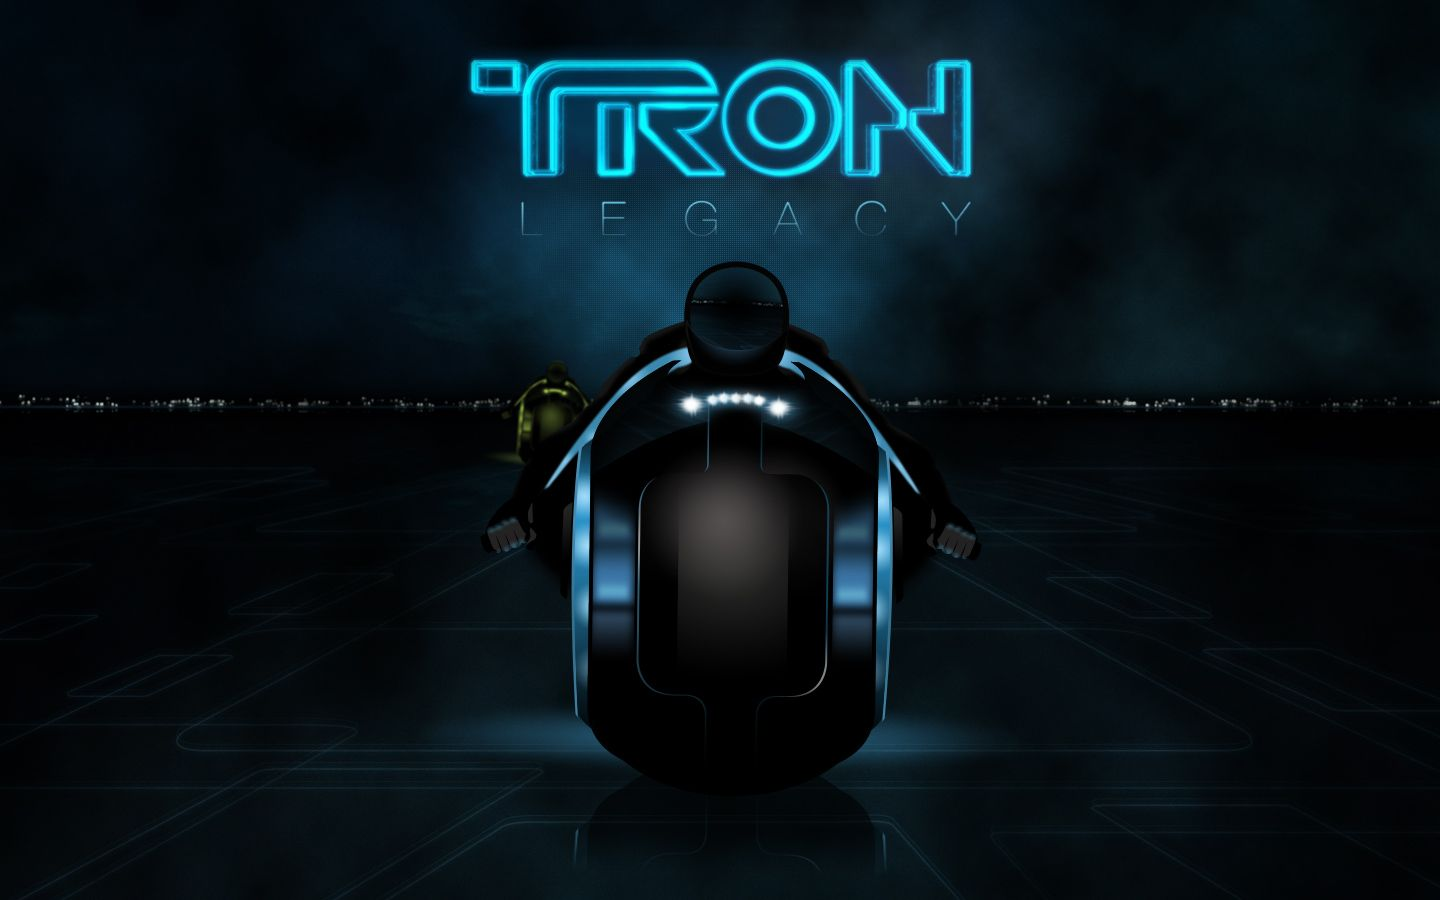 Tron live wallpaper - Agupieware Reallife Tron Lightcycle Hits The Grid After 1920 1080